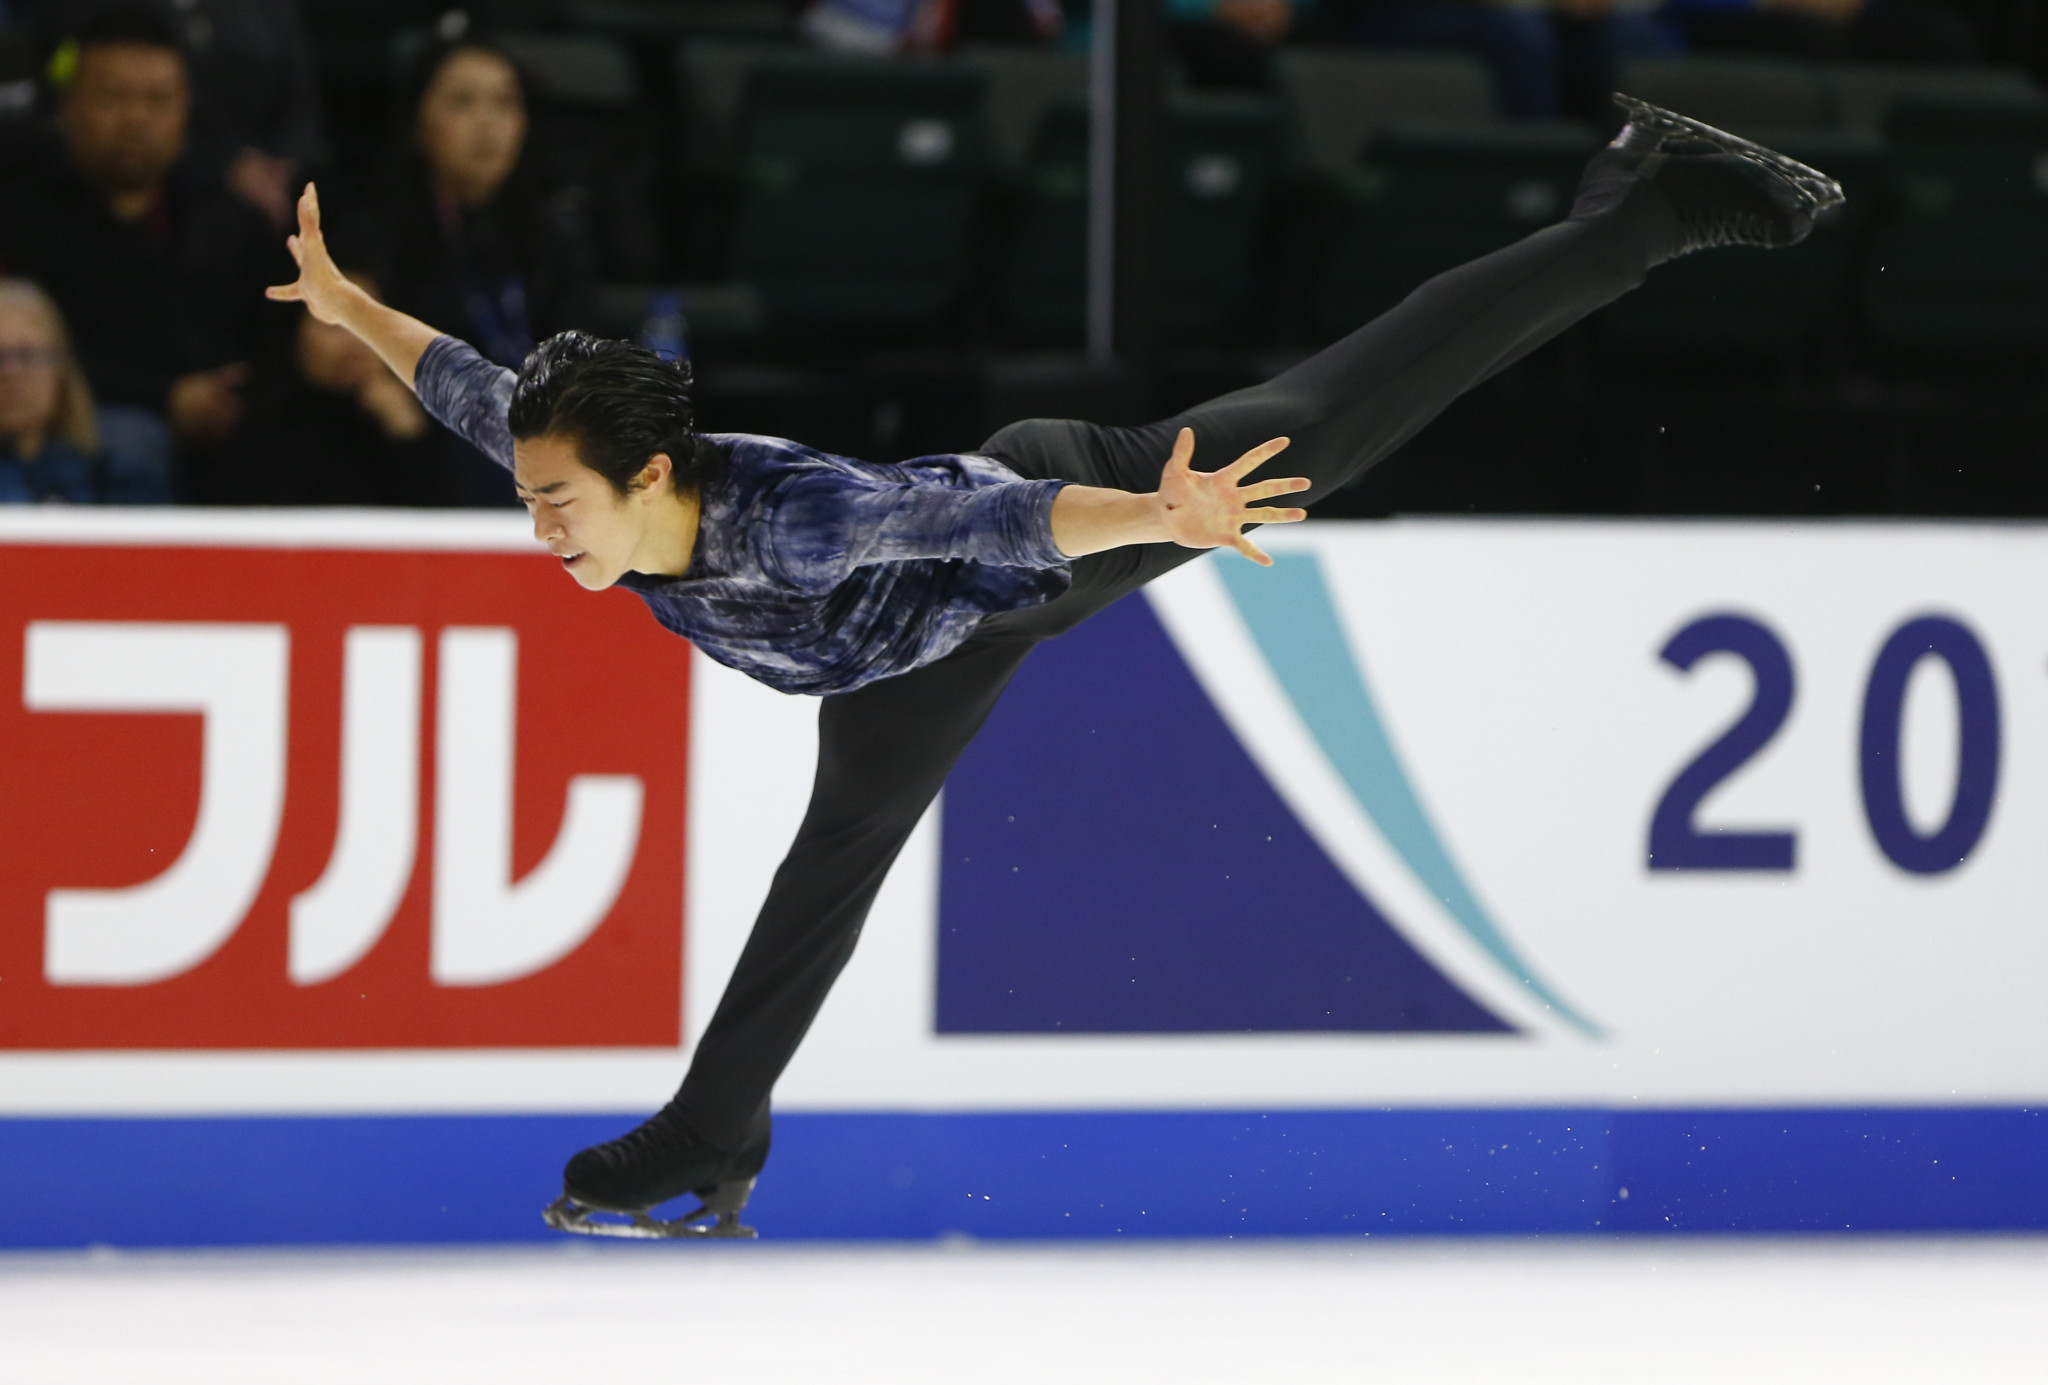 Chen seals comprehensive home victory at Skate America